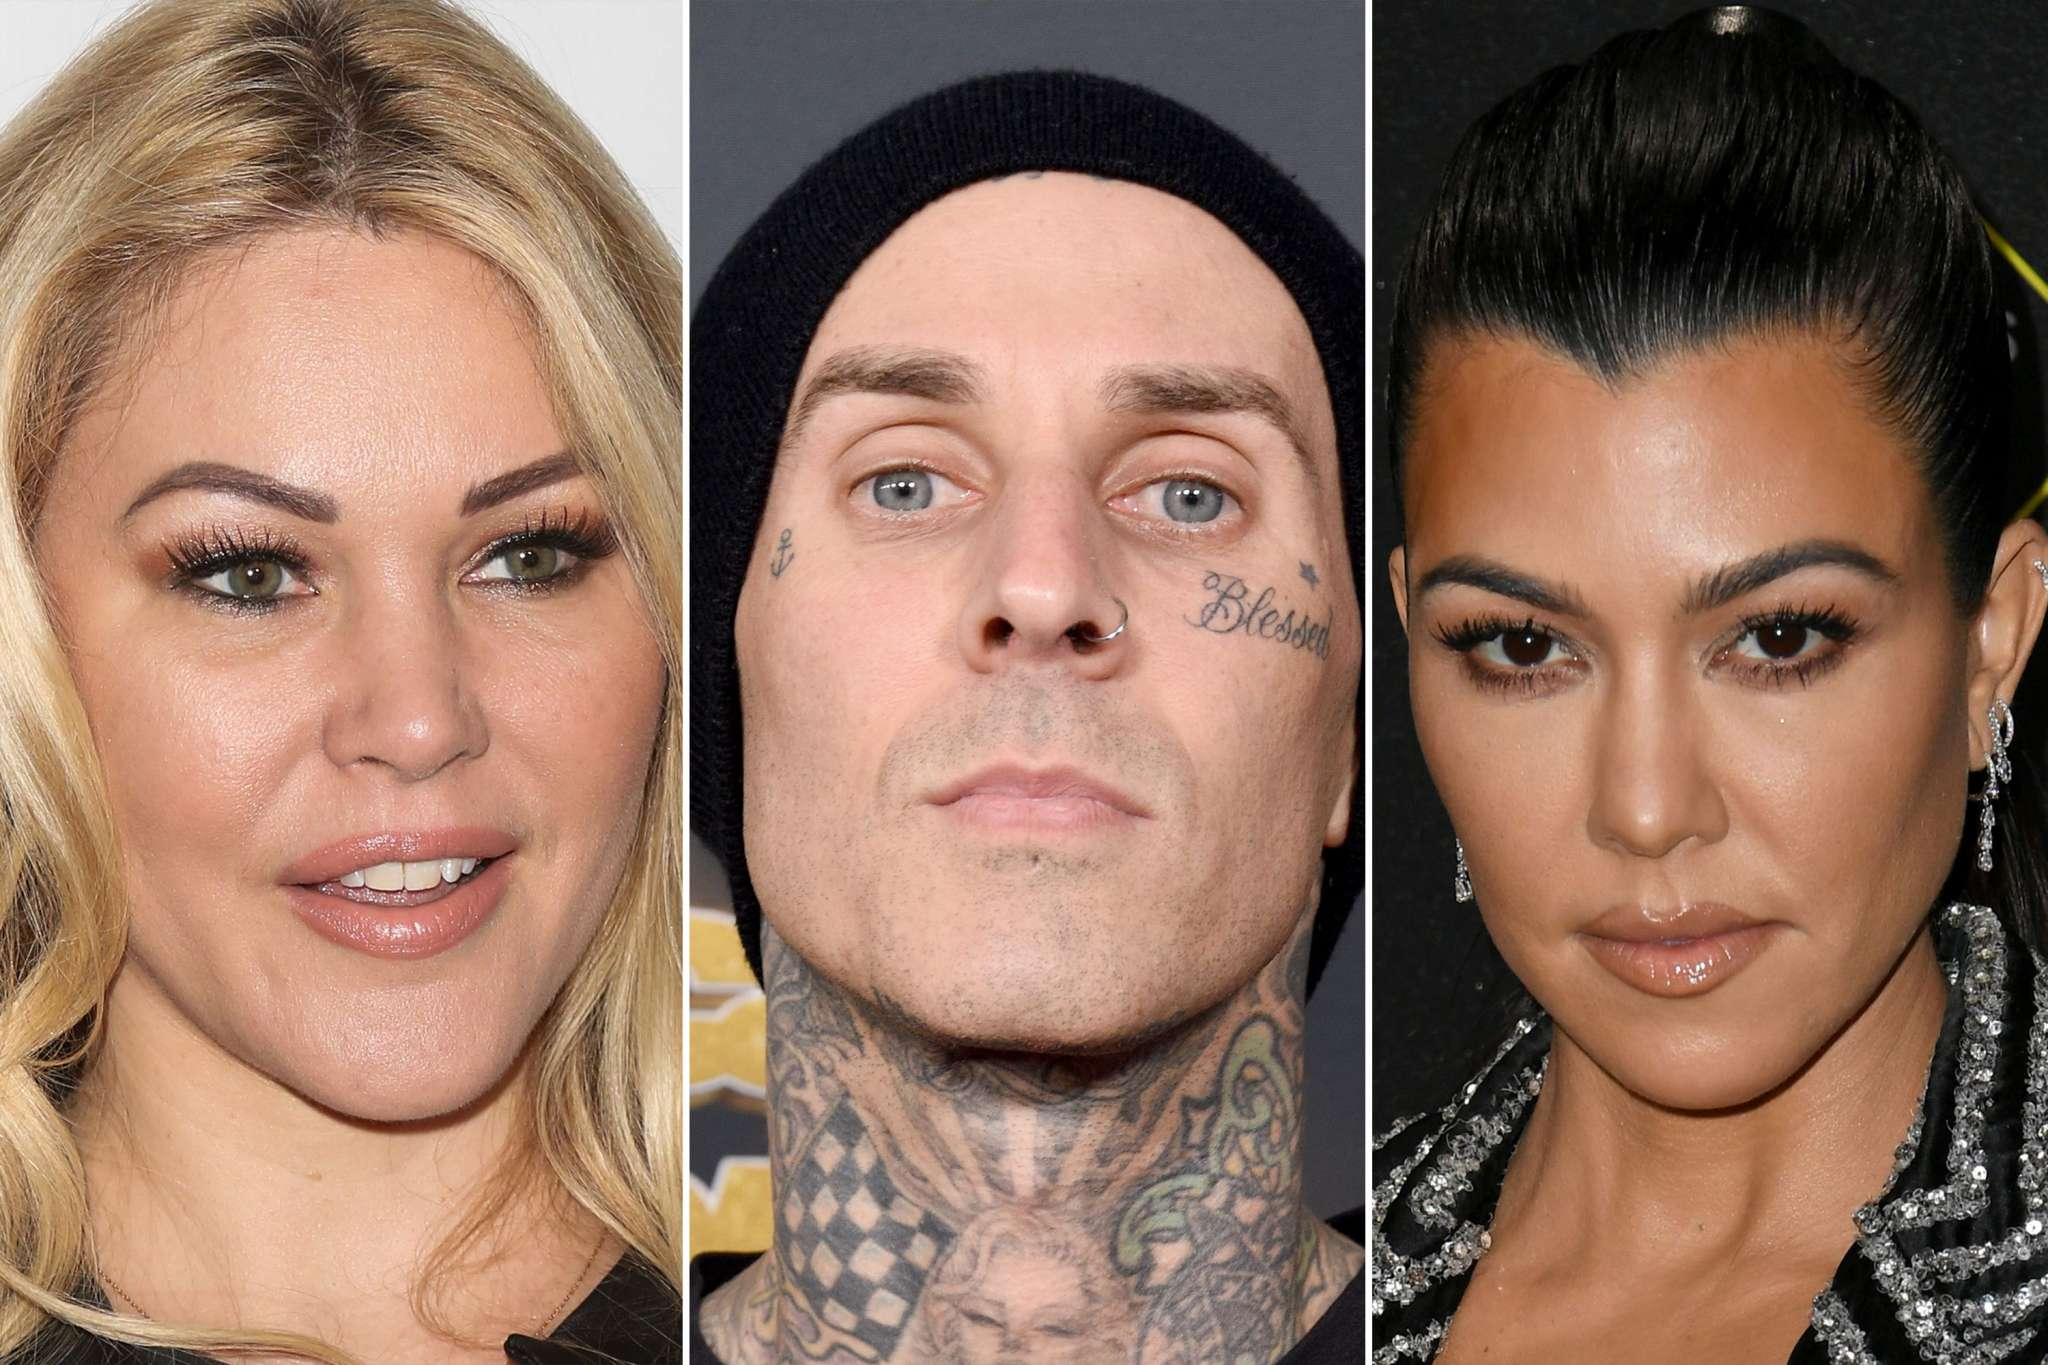 kuwtk-travis-barkers-ex-wife-shanna-moakler-throws-shade-at-his-new-girlfriend-kourtney-kardashian-and-her-family